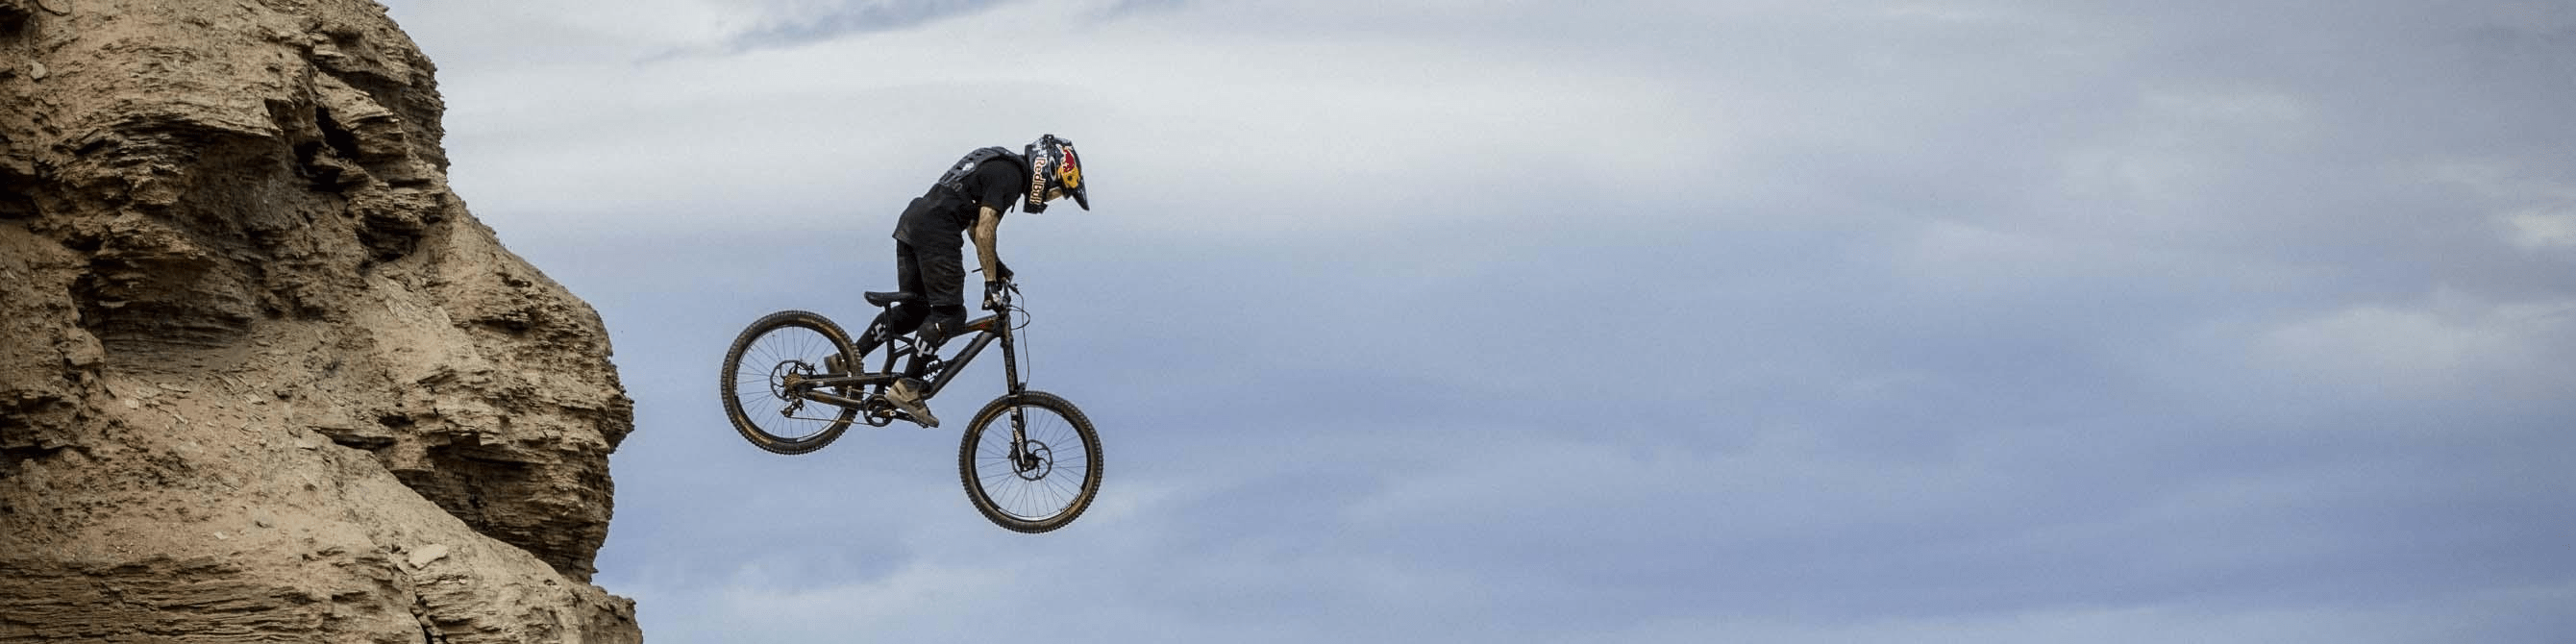 Red Bull Rampage 2016 Header